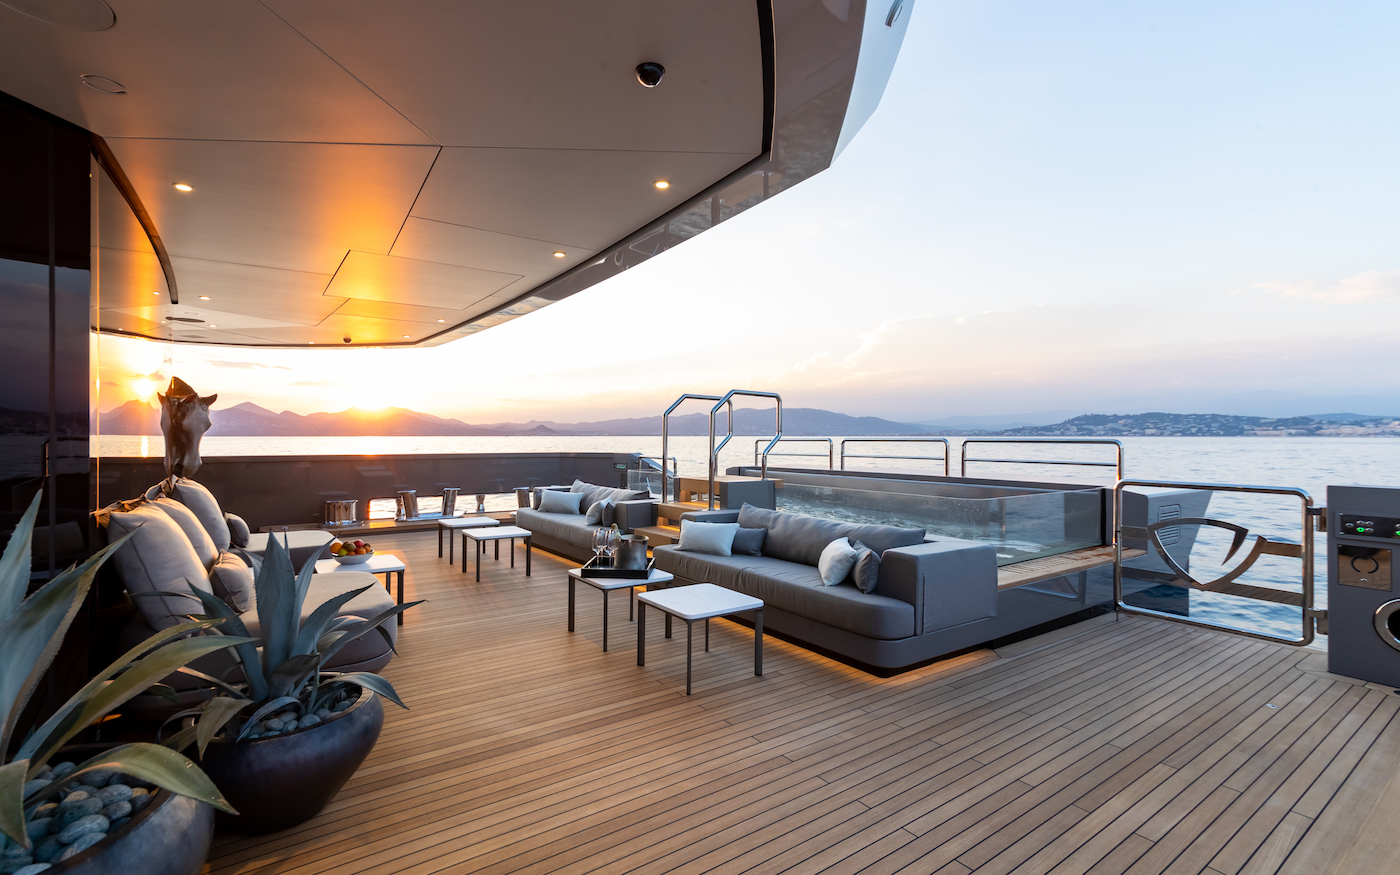 Aft Deck Jacuzzi And Seating Area